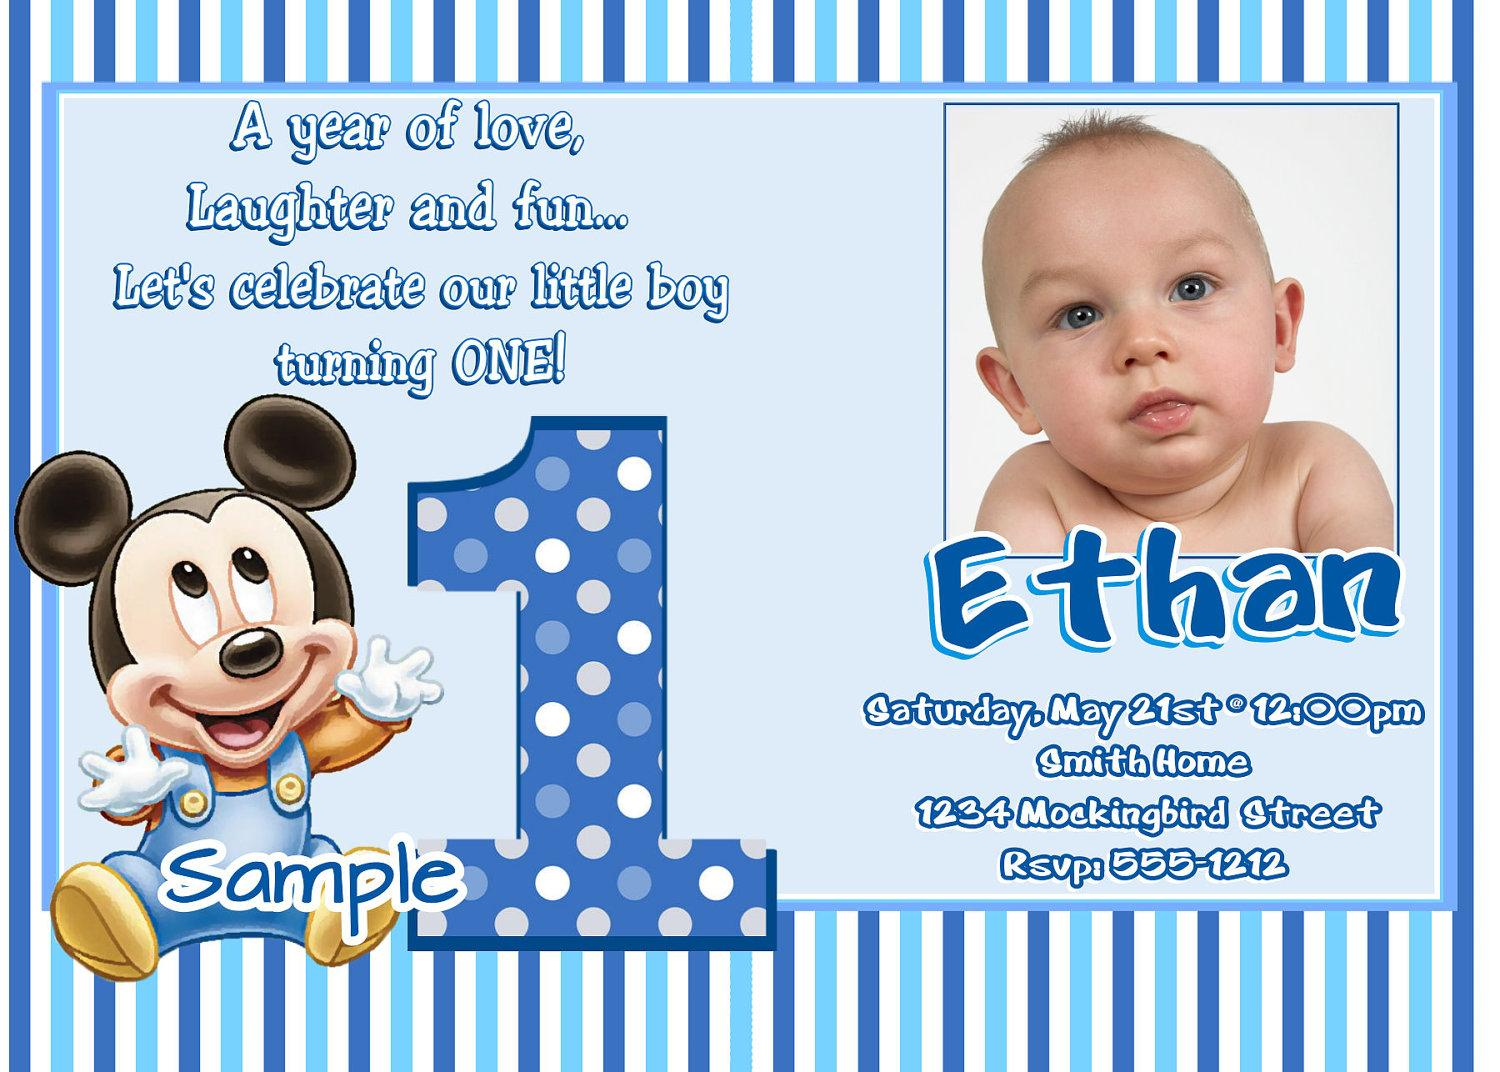 1st birthday invitation matter ; first-birthday-invitation-wording-by-way-of-using-an-impressive-design-concept-for-your-catchy-Baby-Shower-Invitation-Templates-7